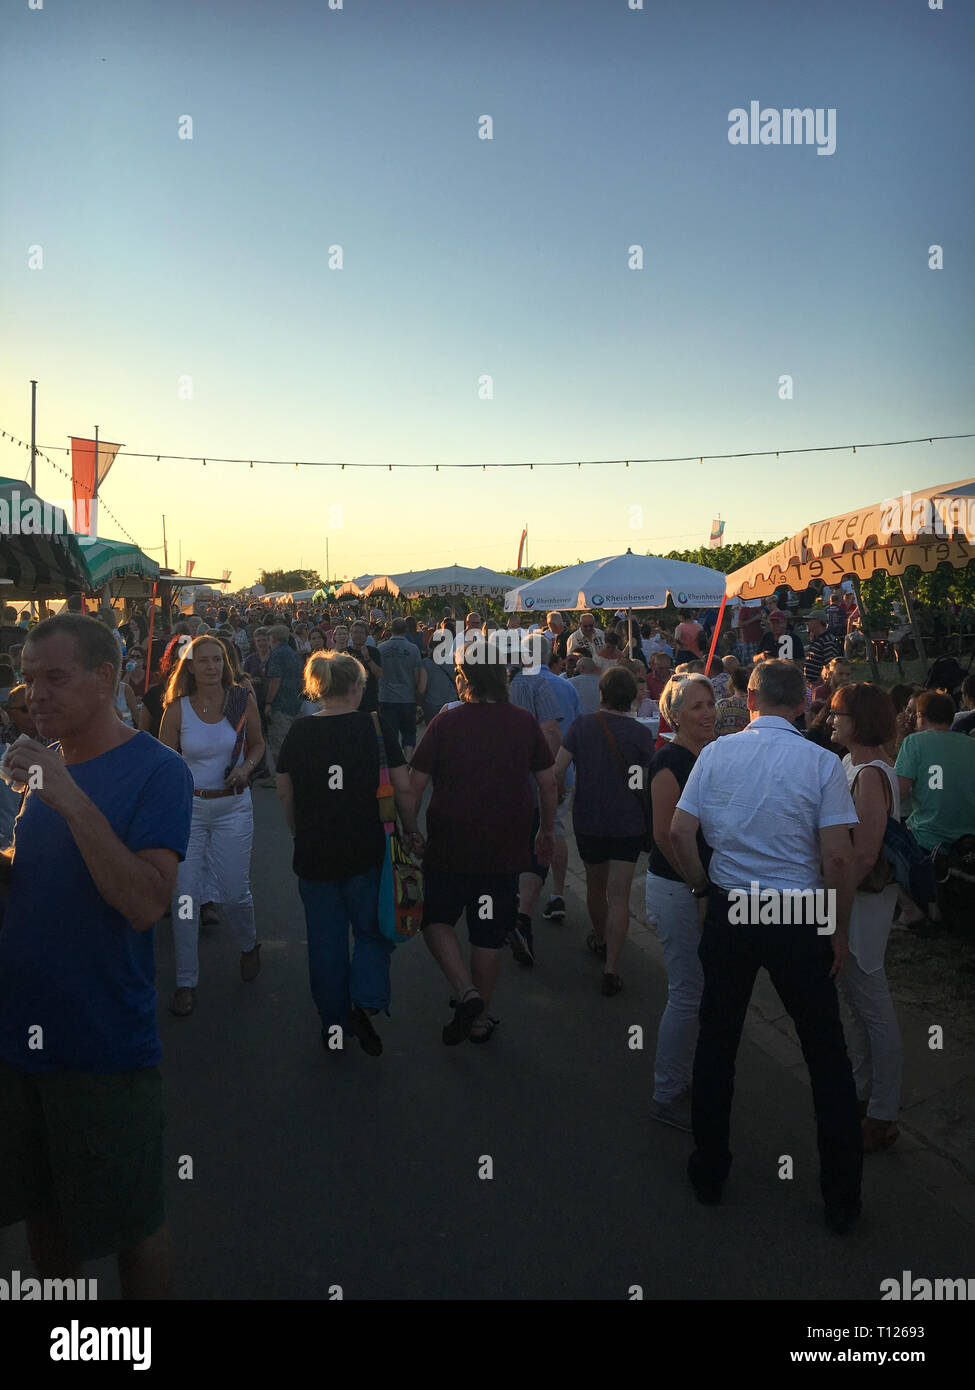 """Mainz, Germany – June 29, 2018: People enjoying food, wine and drinks at a local fair called """"Weinfest im Kirchenstück"""", a wine festival in Hechtsheim - Stock Image"""